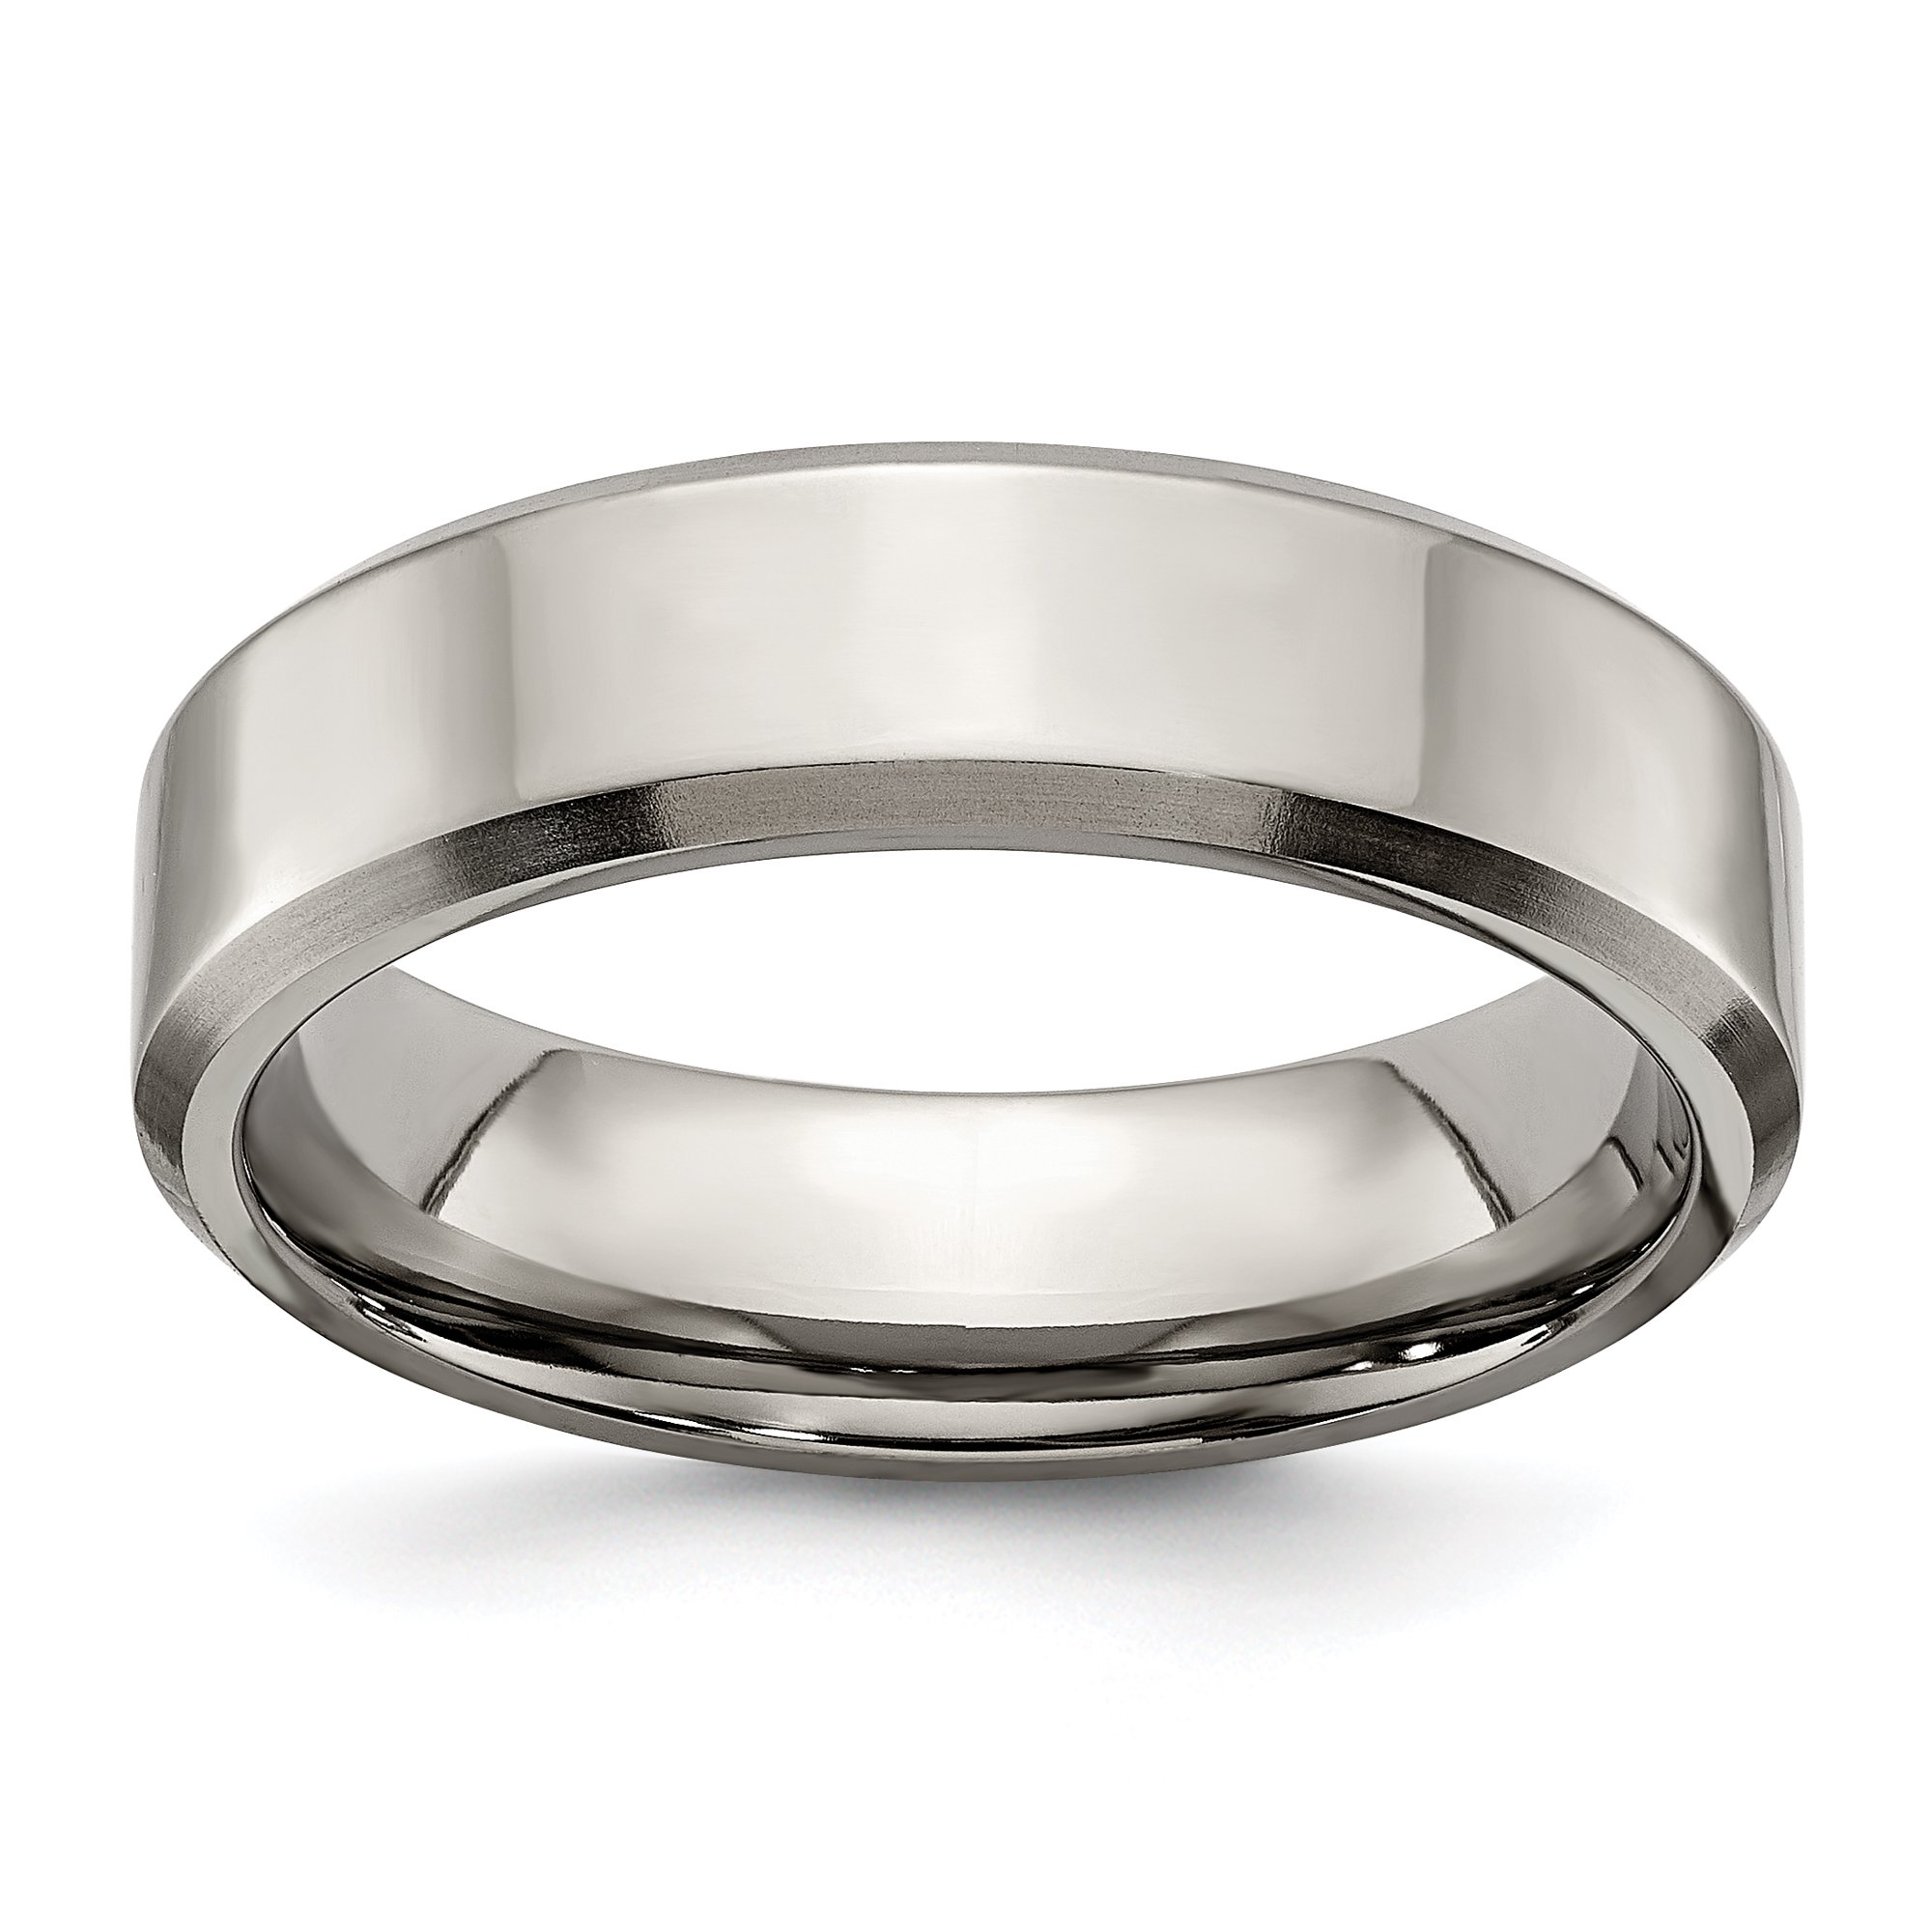 Titanium Beveled Edge 6mm Brushed Wedding Ring Band Size 8 50